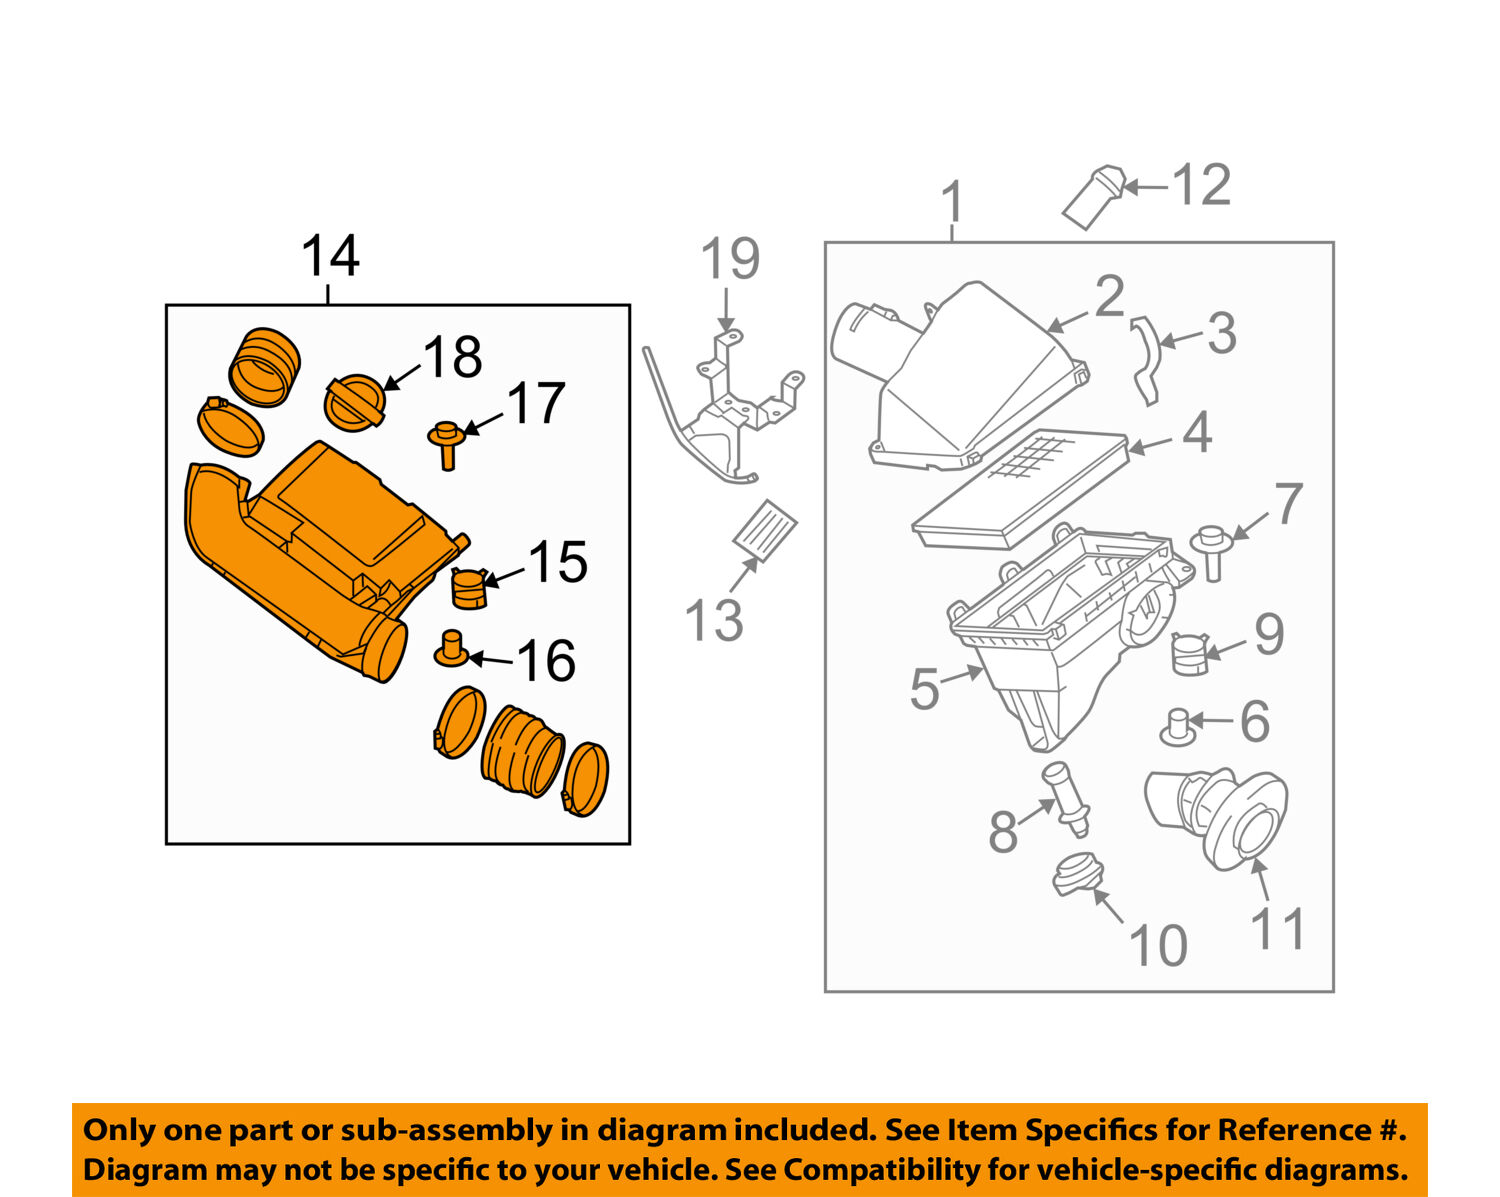 Nissan Oem 05 16 Frontier 40l Air Cleaner Intake Duct Tube Hose 2 4l Engine Diagram 1 Of 2only Available